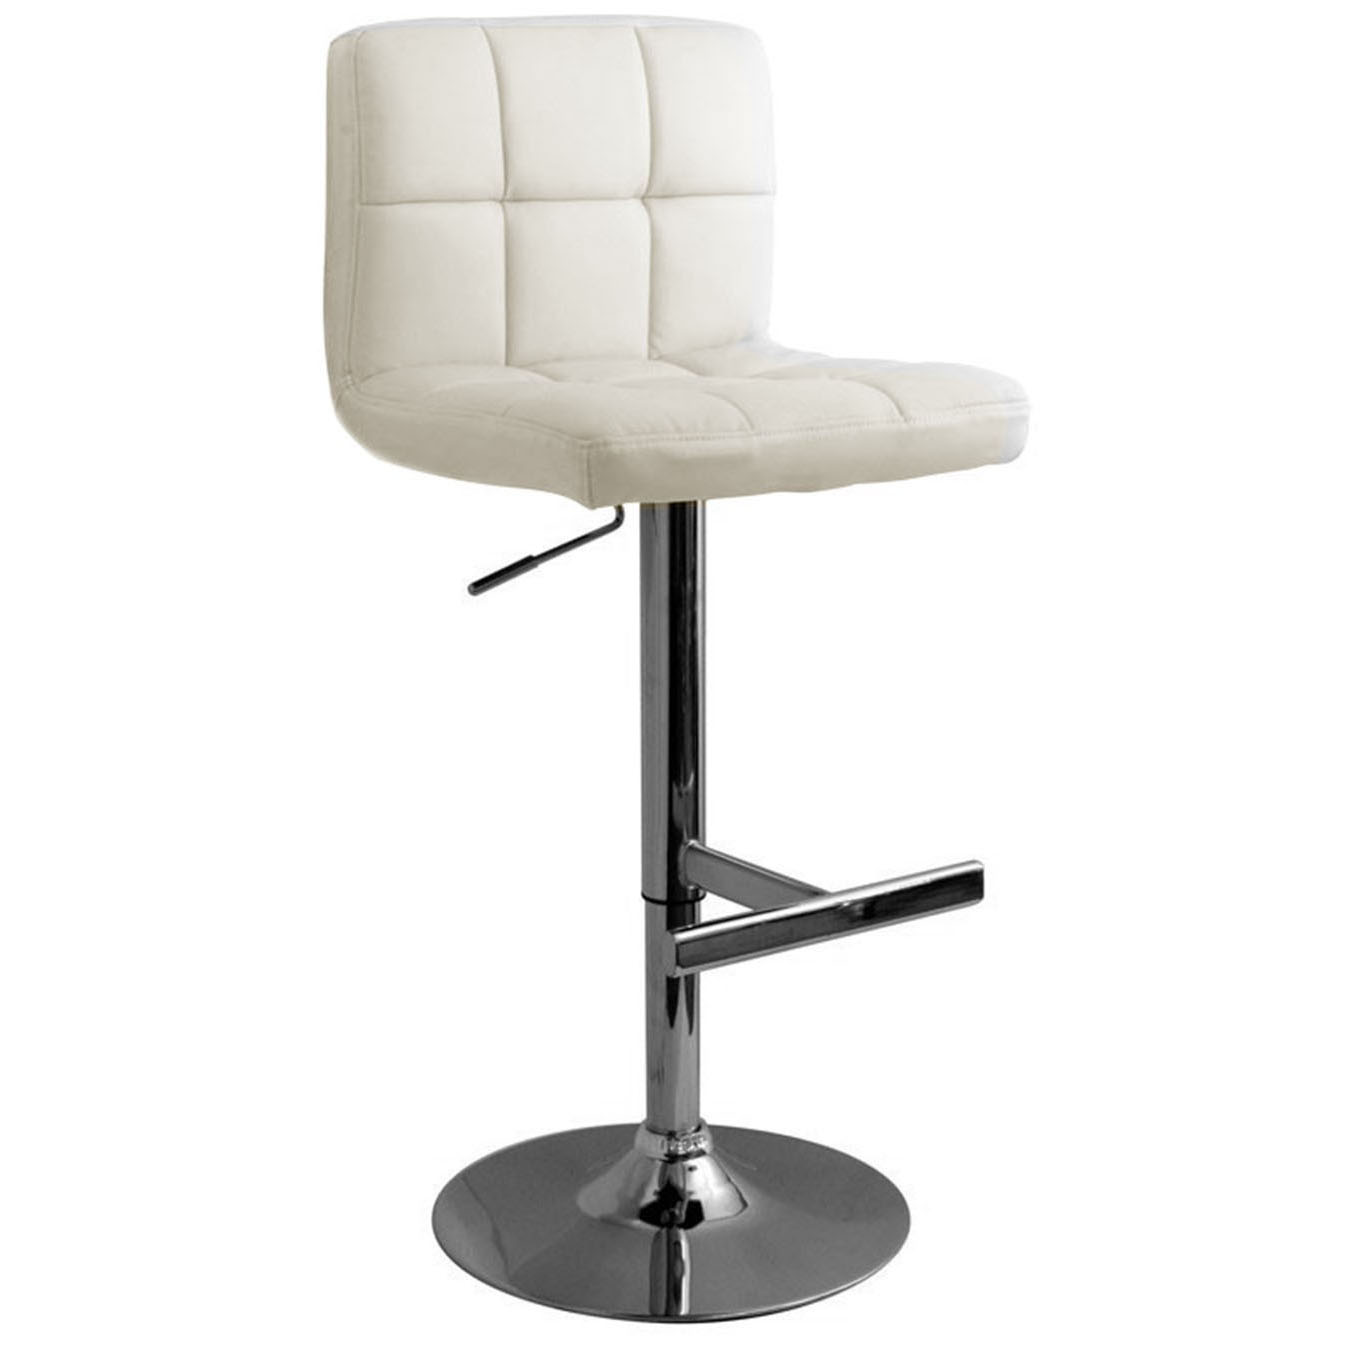 Allegro Leather Brushed Bar Stool - White Product Image